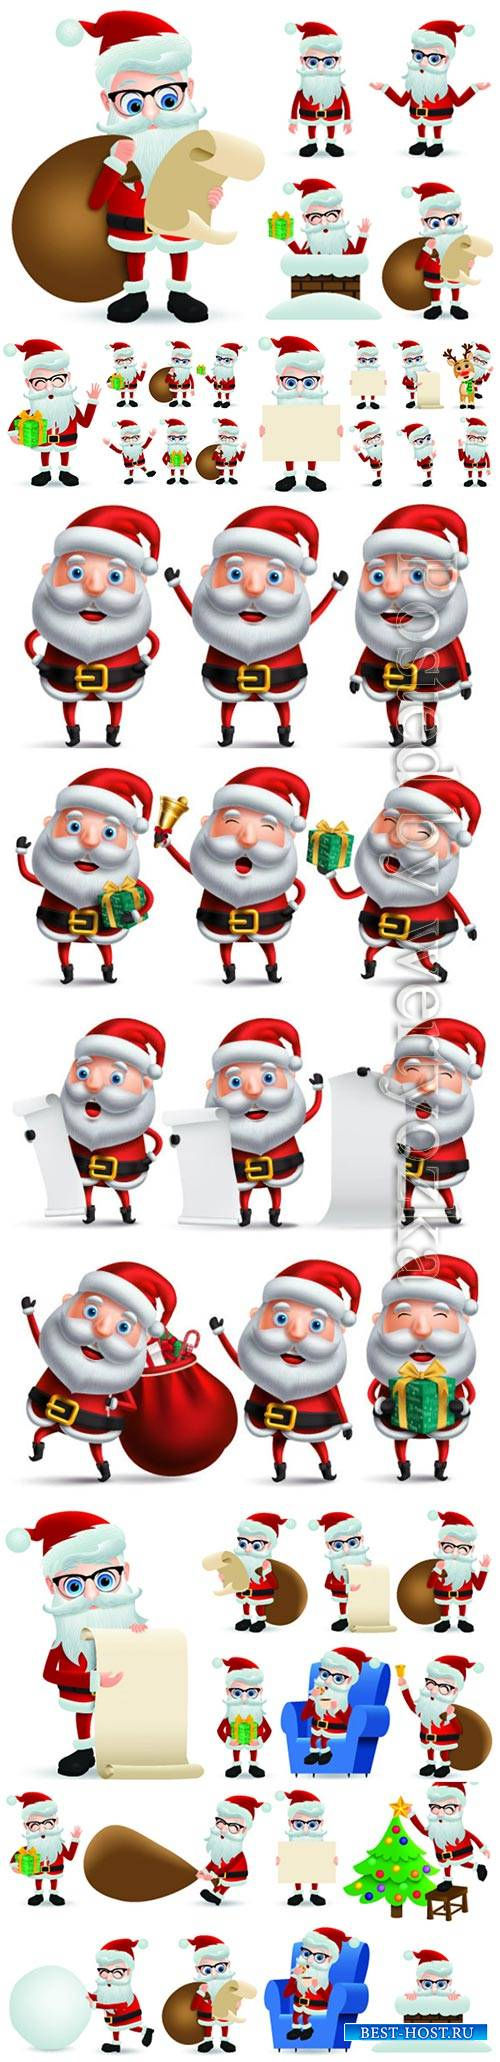 Santa claus vector character showing and holding wish list for christmas gift